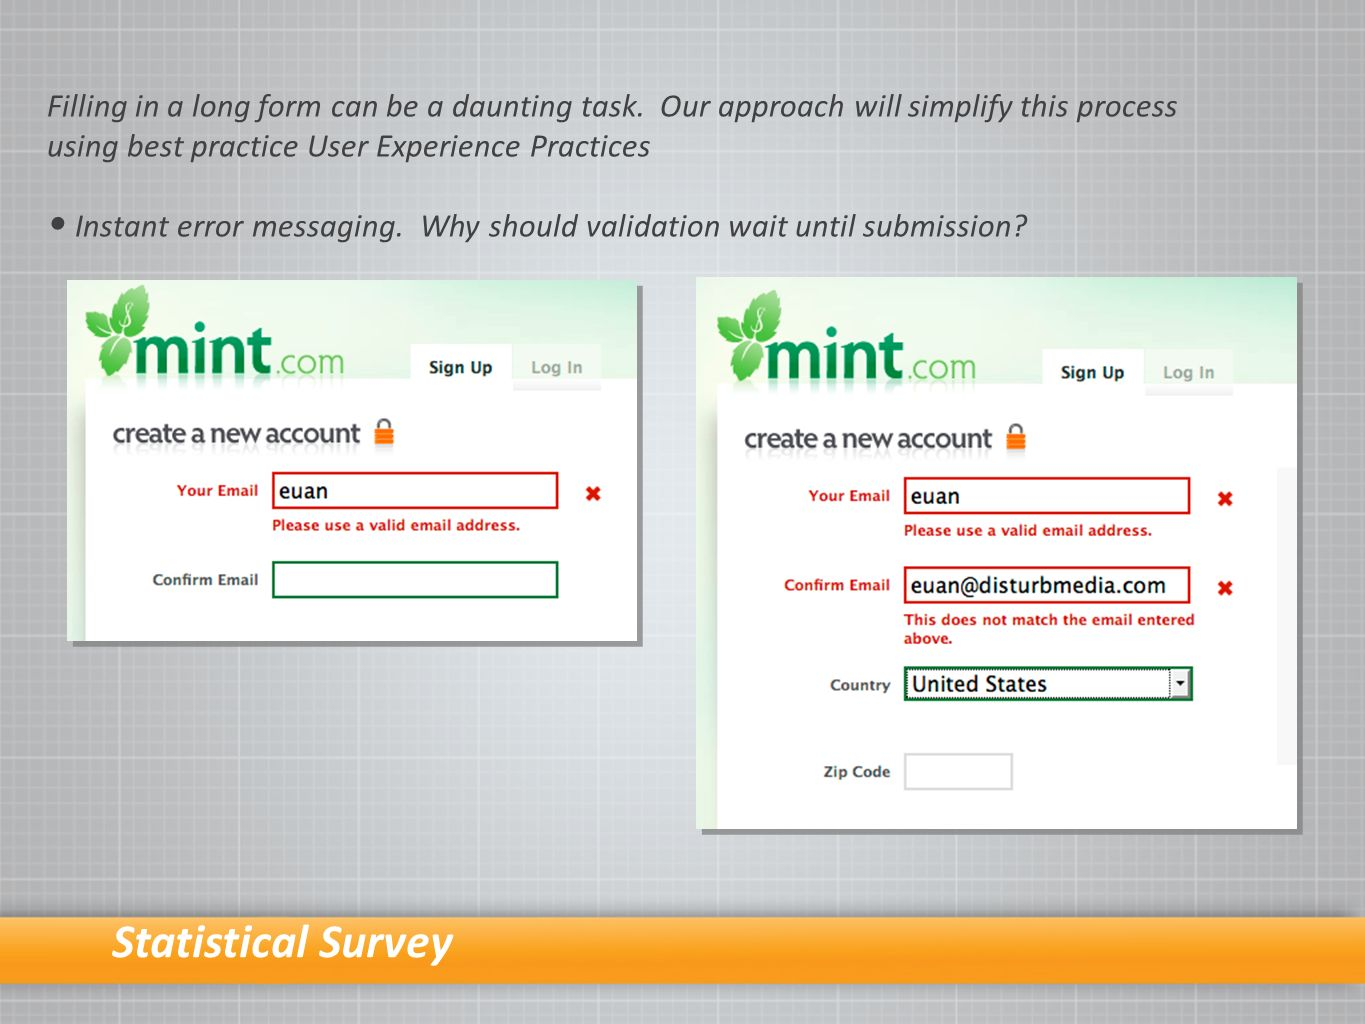 Statistical Survey Filling in a long form can be a daunting task.